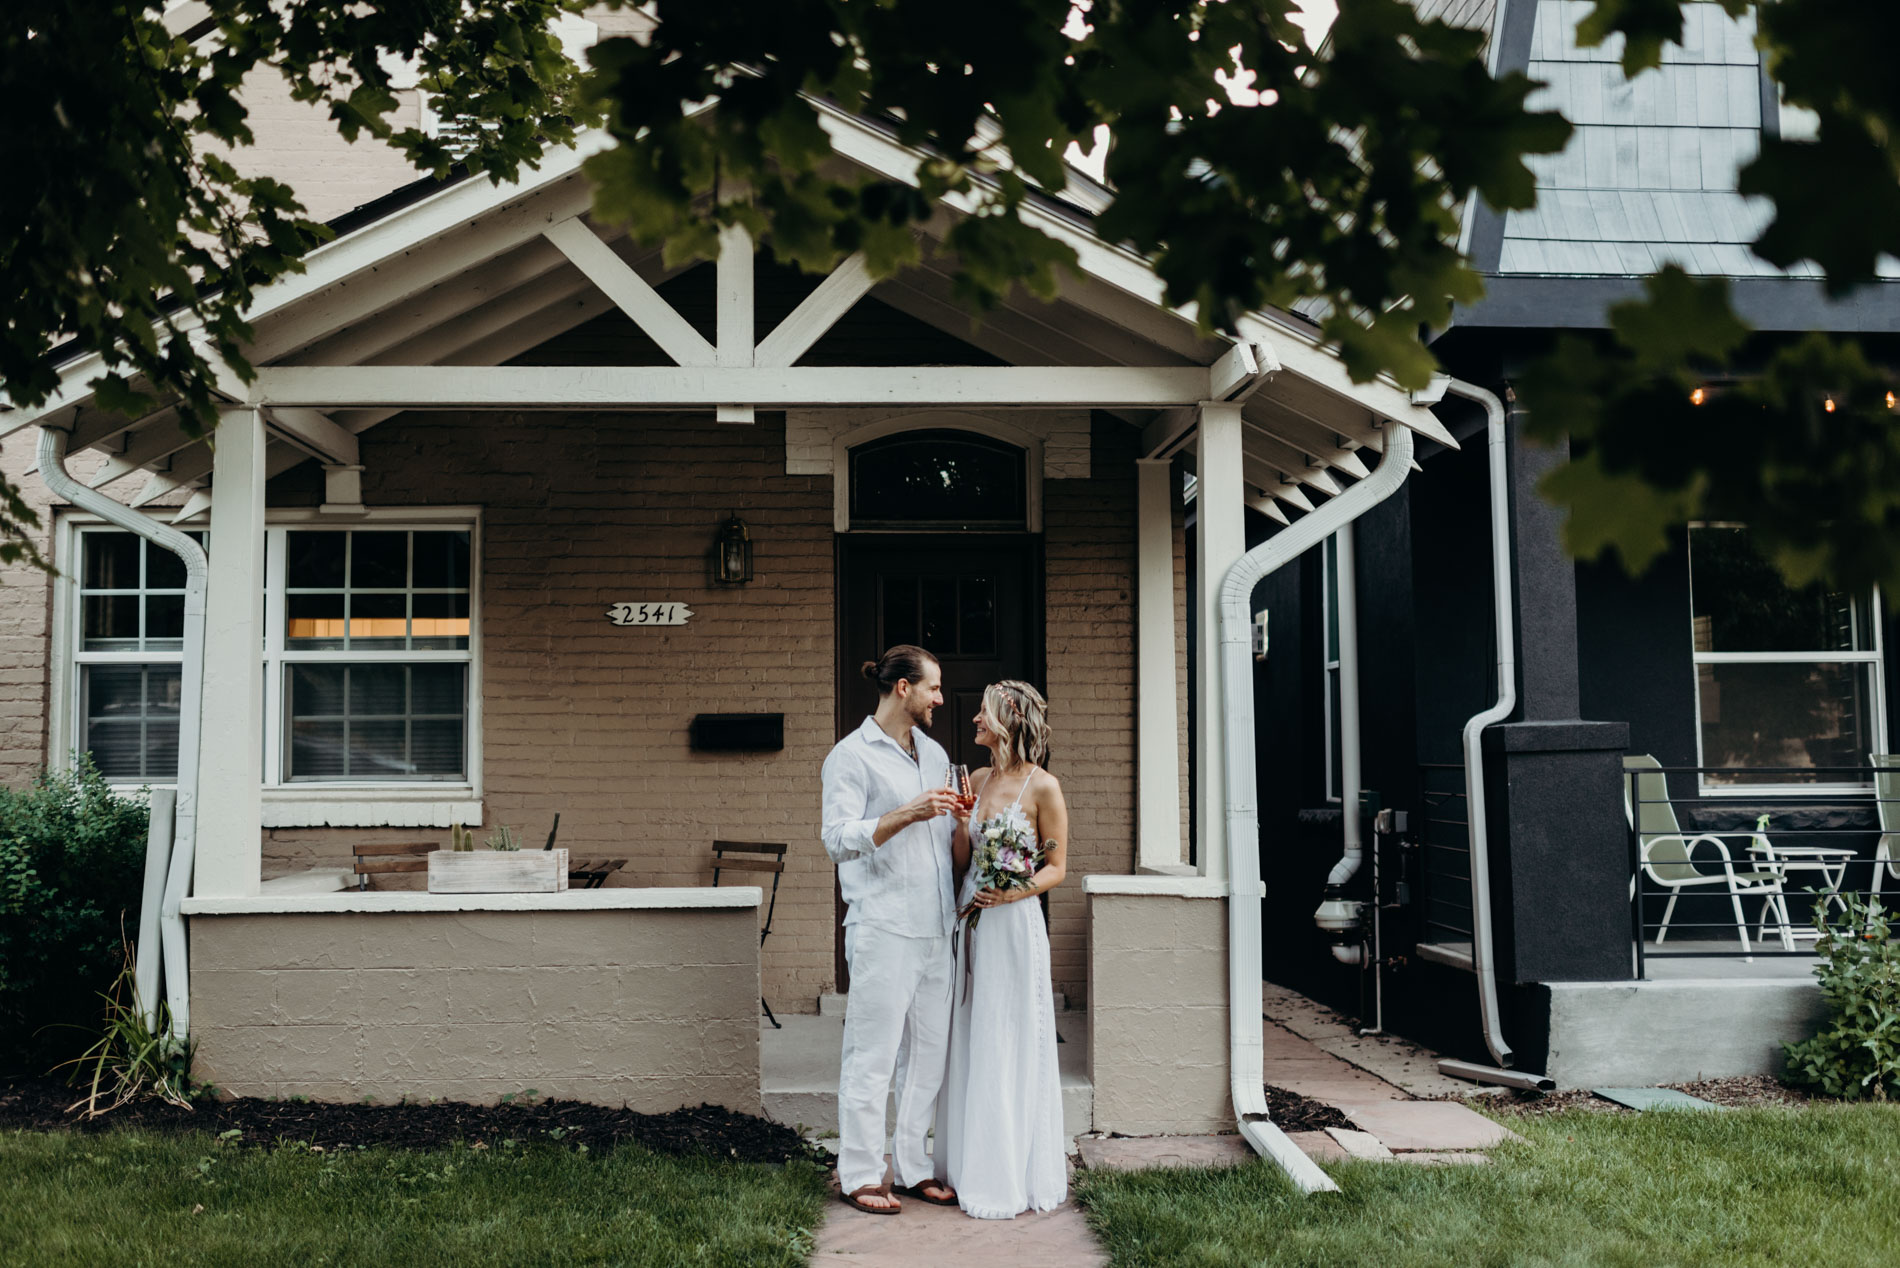 in-home-wedding-Intimate-wedding-photographer-Intimate-wedding-photography-elopement-photographer-traveling-wedding-photographer-traveling-elopement-photographer-Adventure-elopement-photographer-002